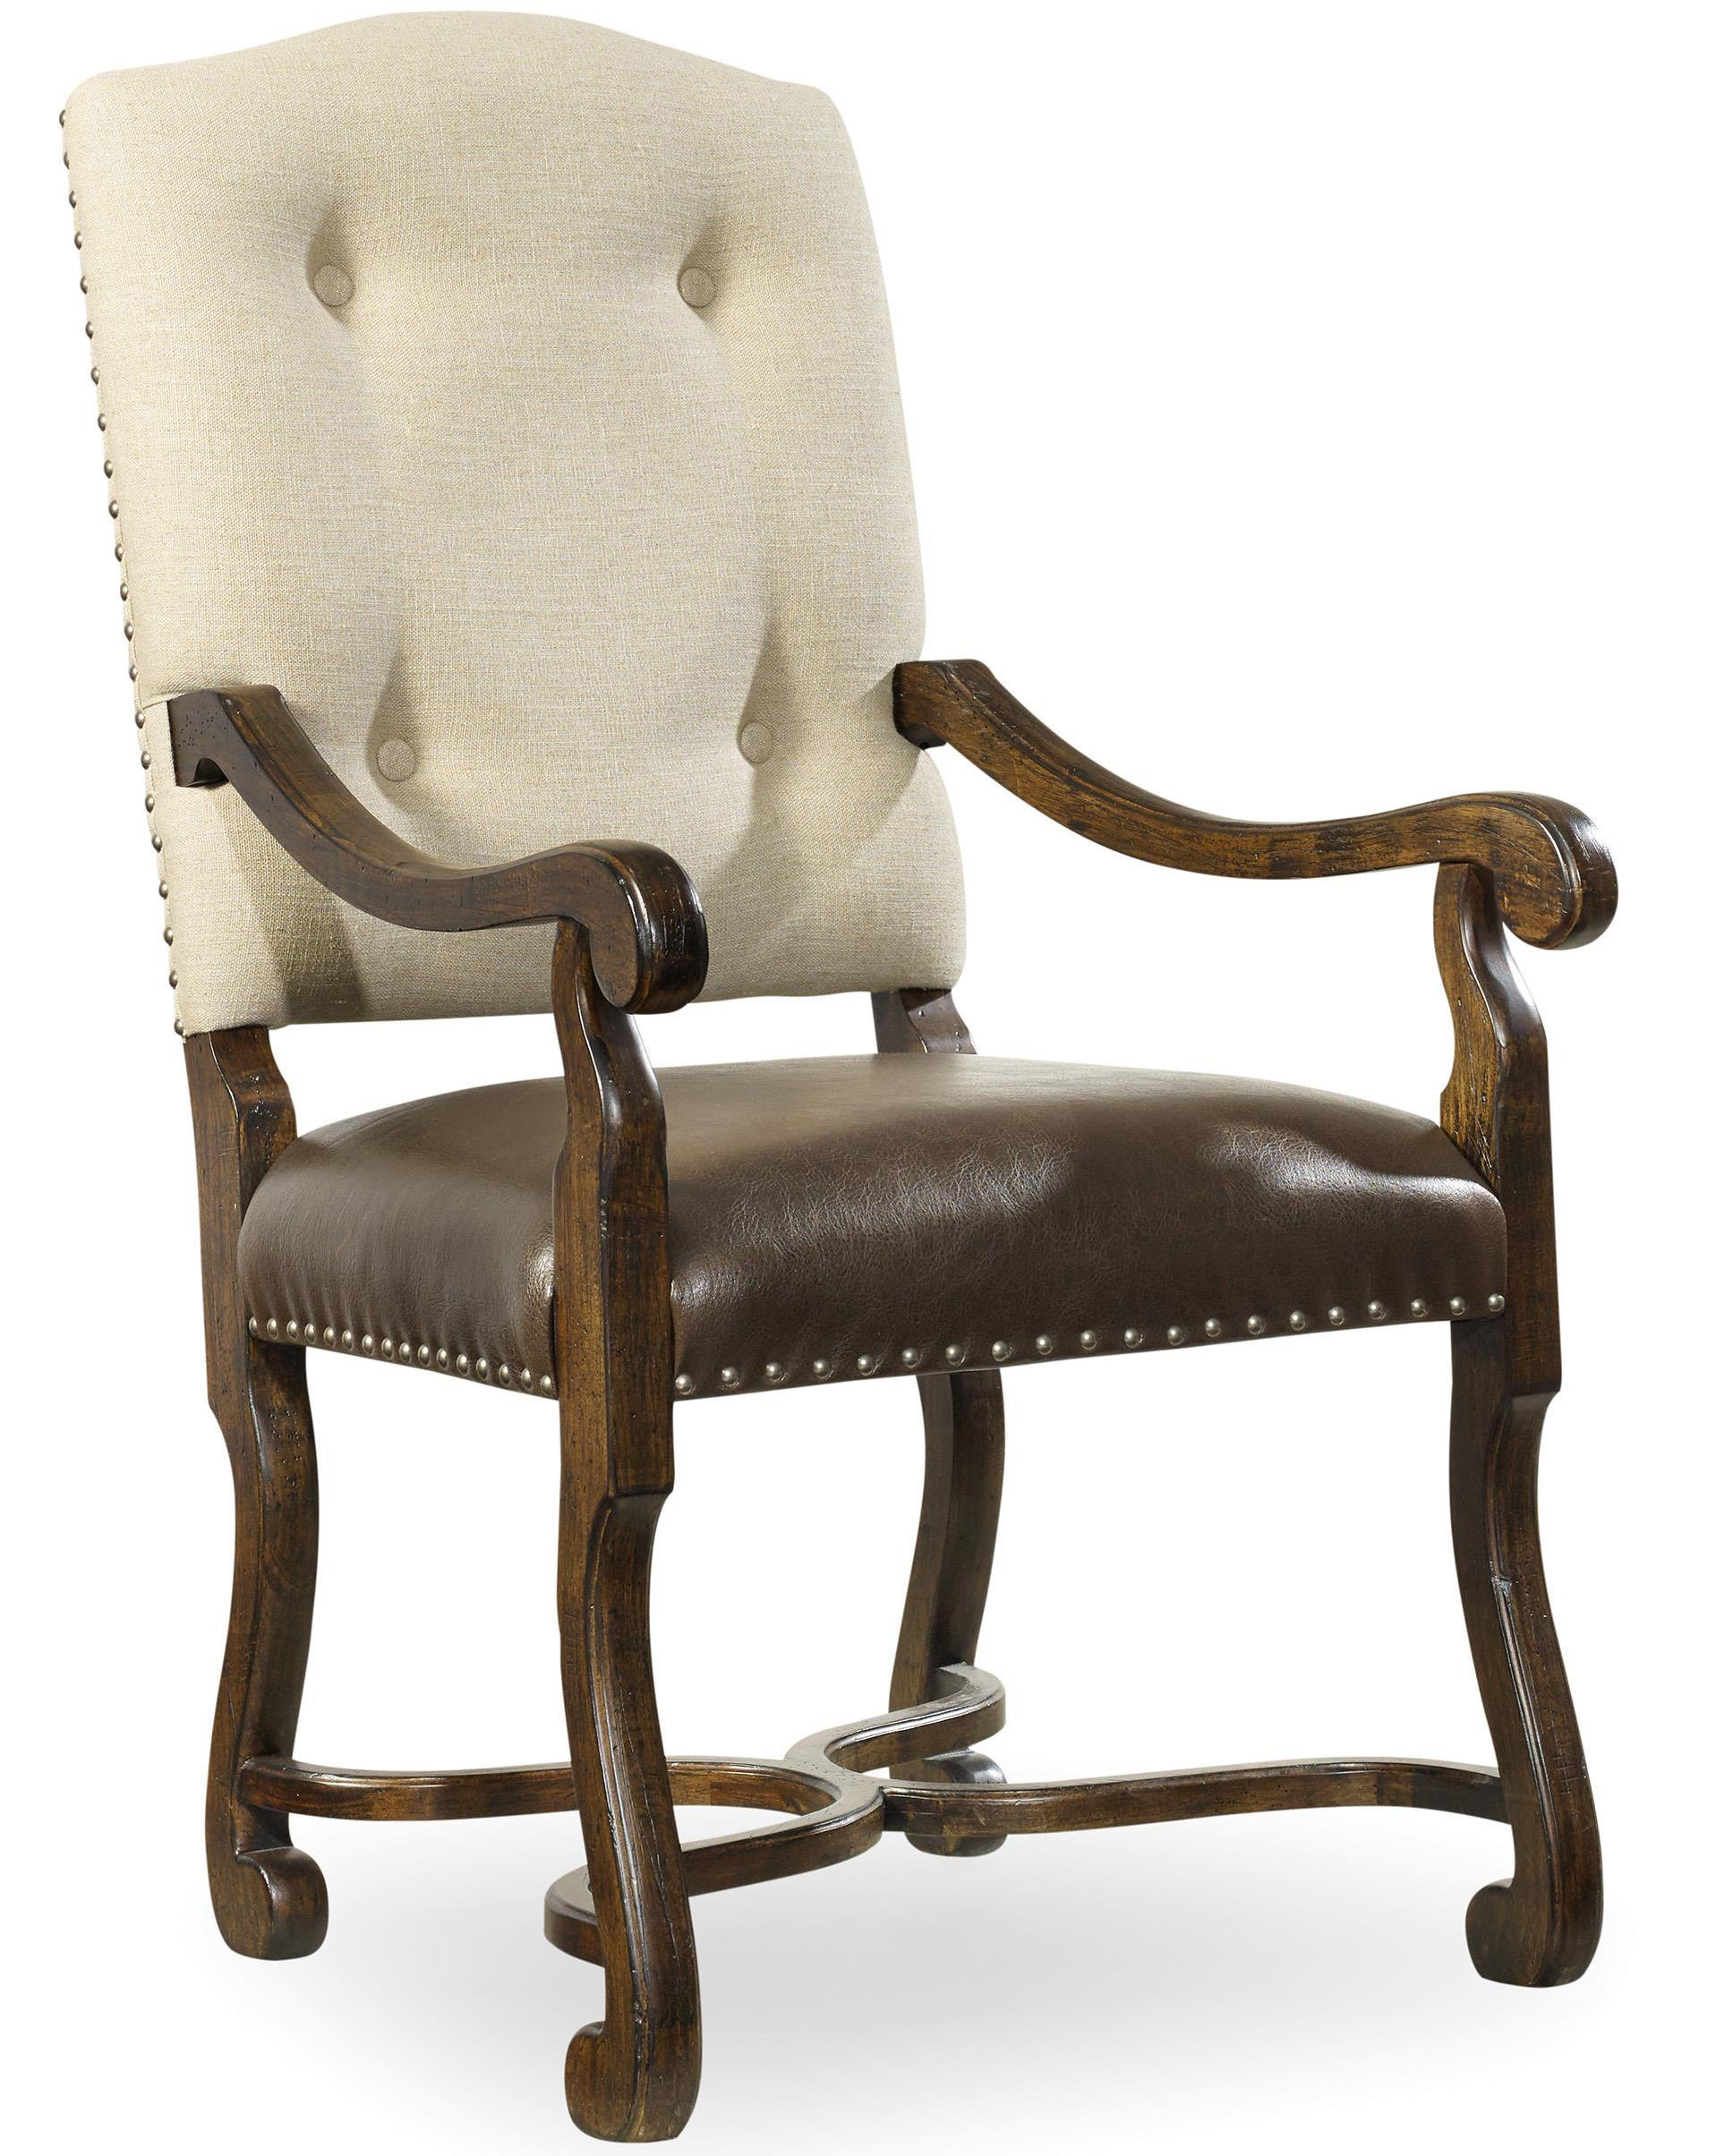 Hooker Furniture Treviso Camelback Arm Chair - Item Number: 5474-75500